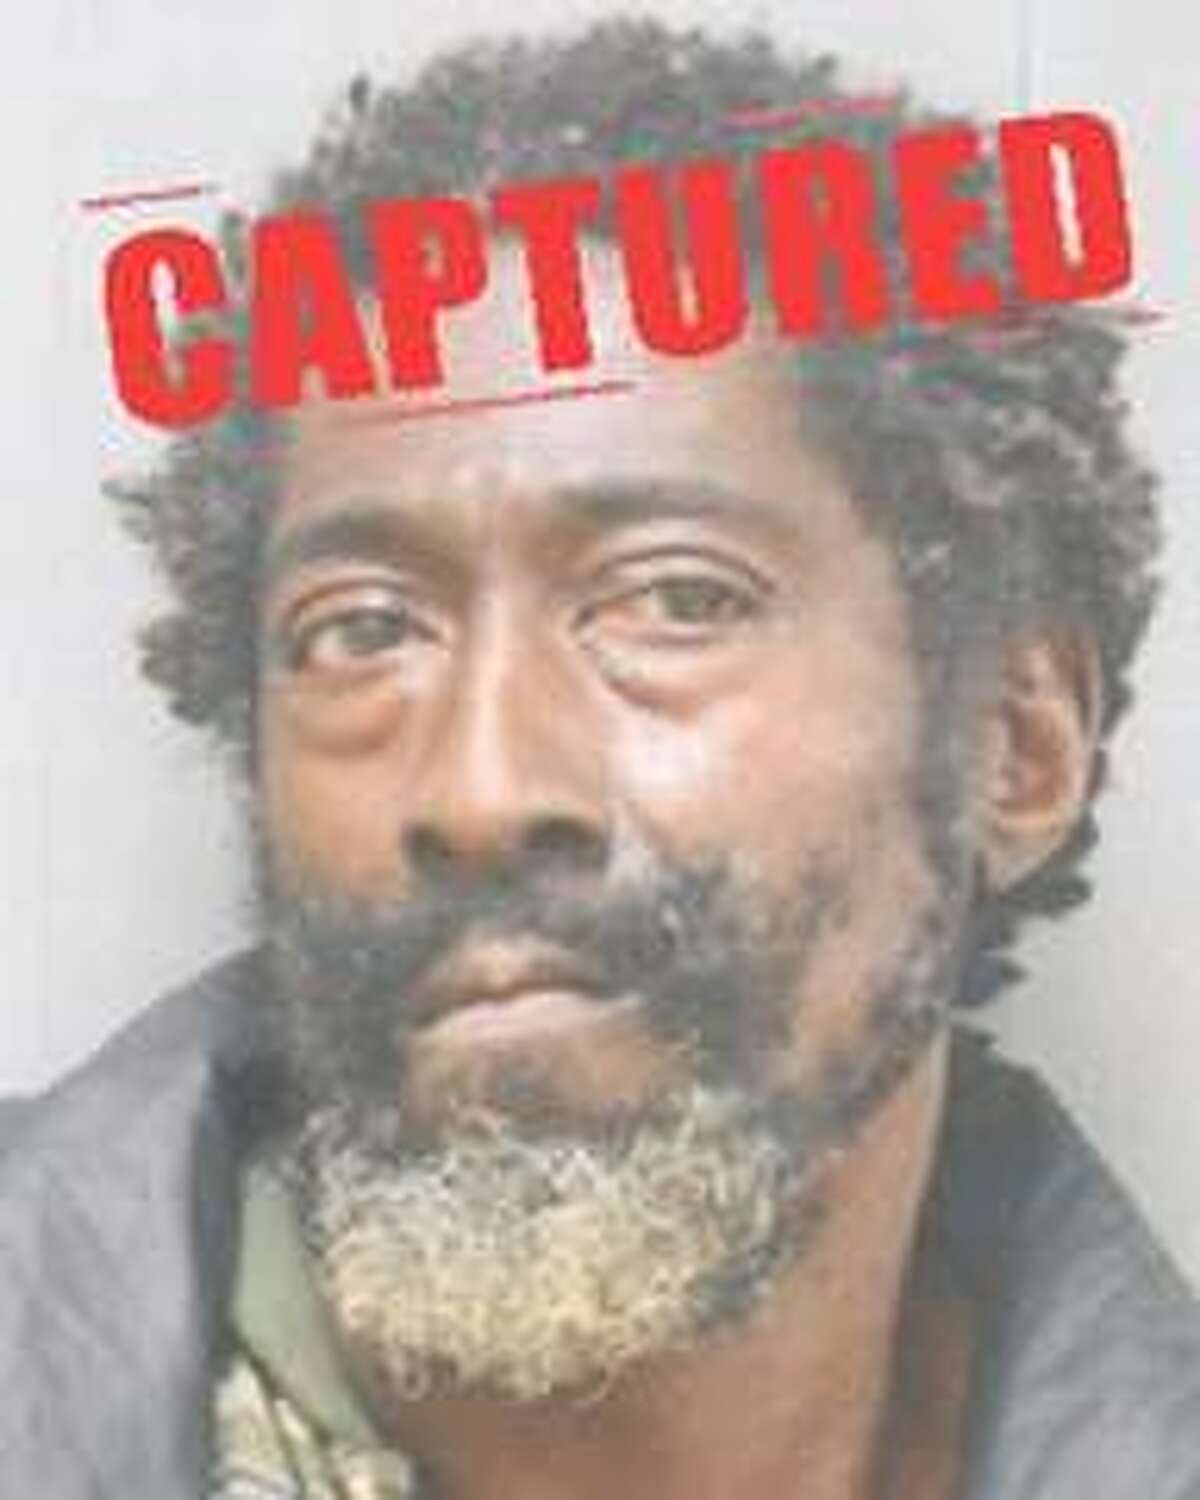 Paul Ray Bass, 53, was arrested Jan. 23 in Houston. He had been on the Texas Top Ten Most Wanted Sex Offenders list.